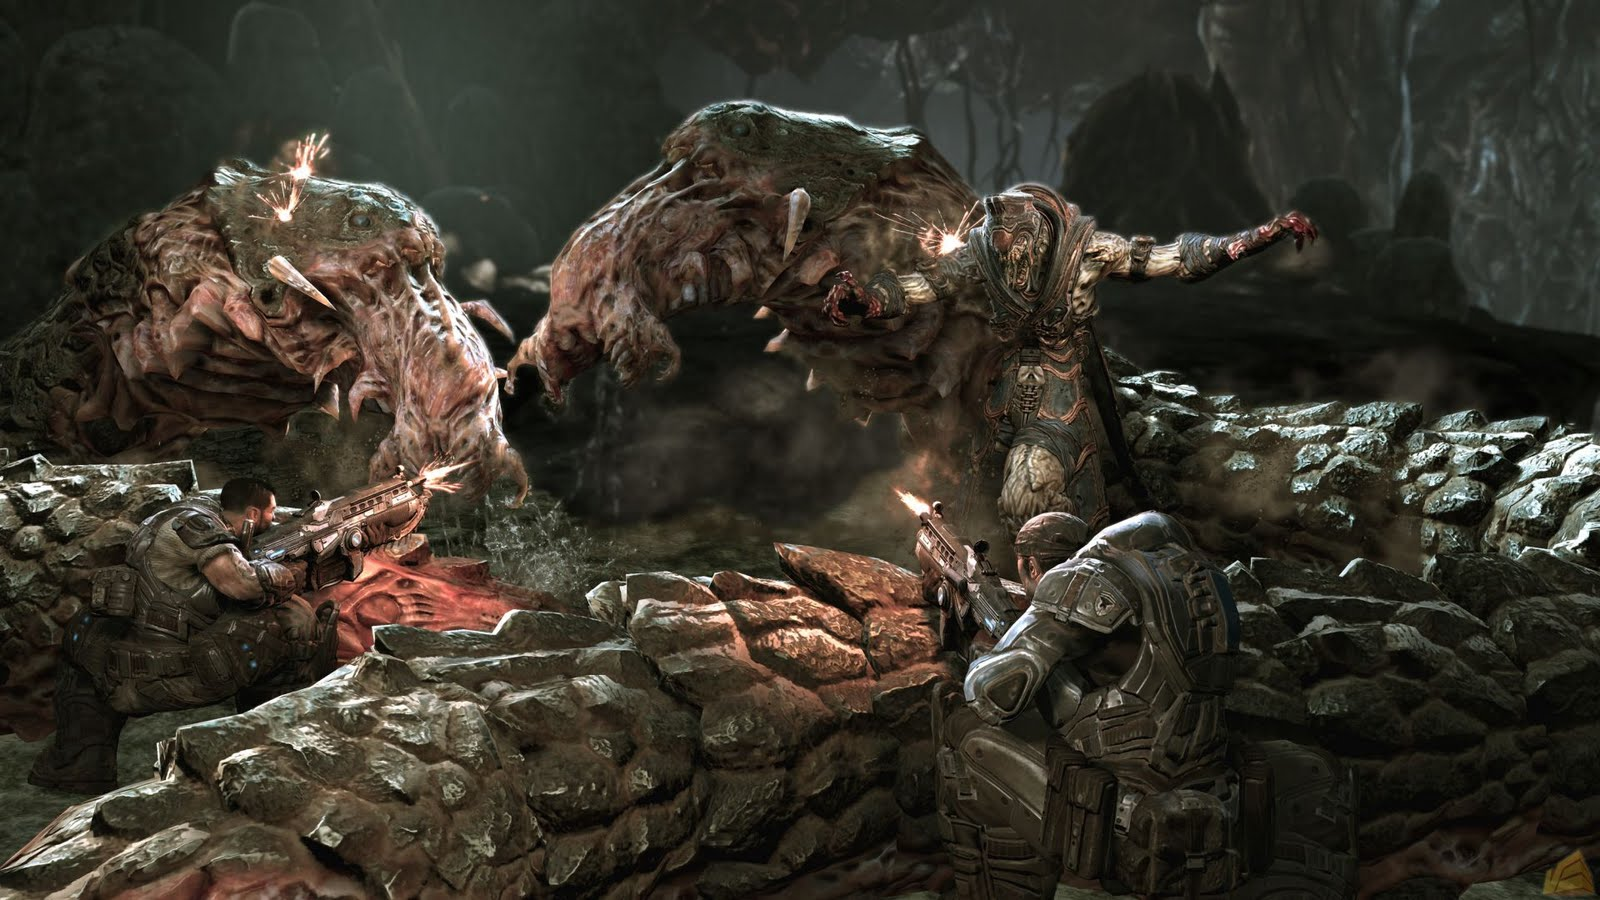 Gears of War HD & Widescreen Wallpaper 0.00380166152108297